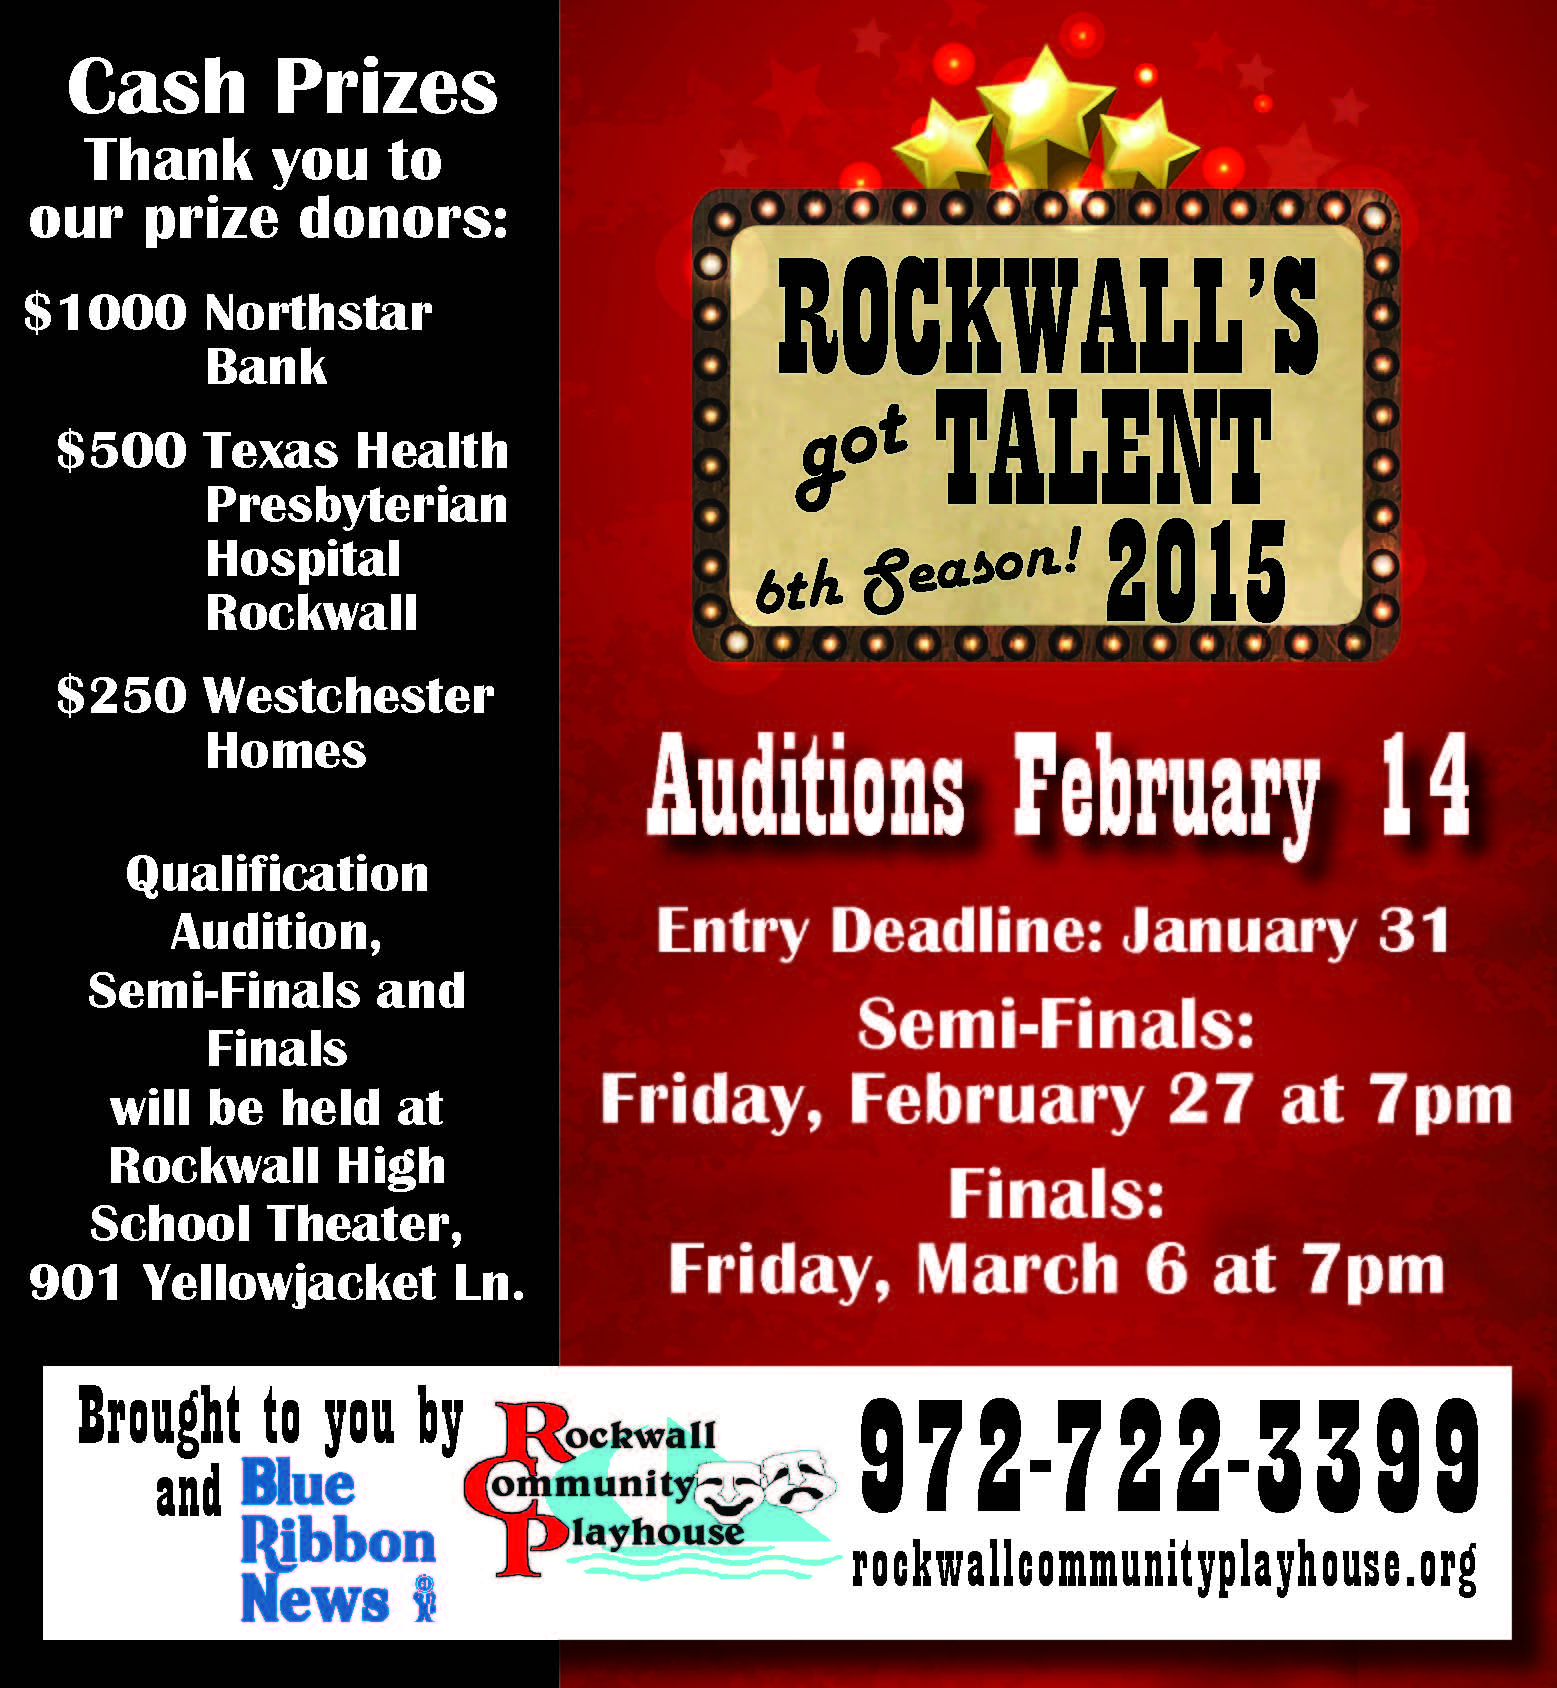 2015_01_26 RCP Rockwall Got Talent BRN print 5_1875 x 5_625 Av1 FINAL